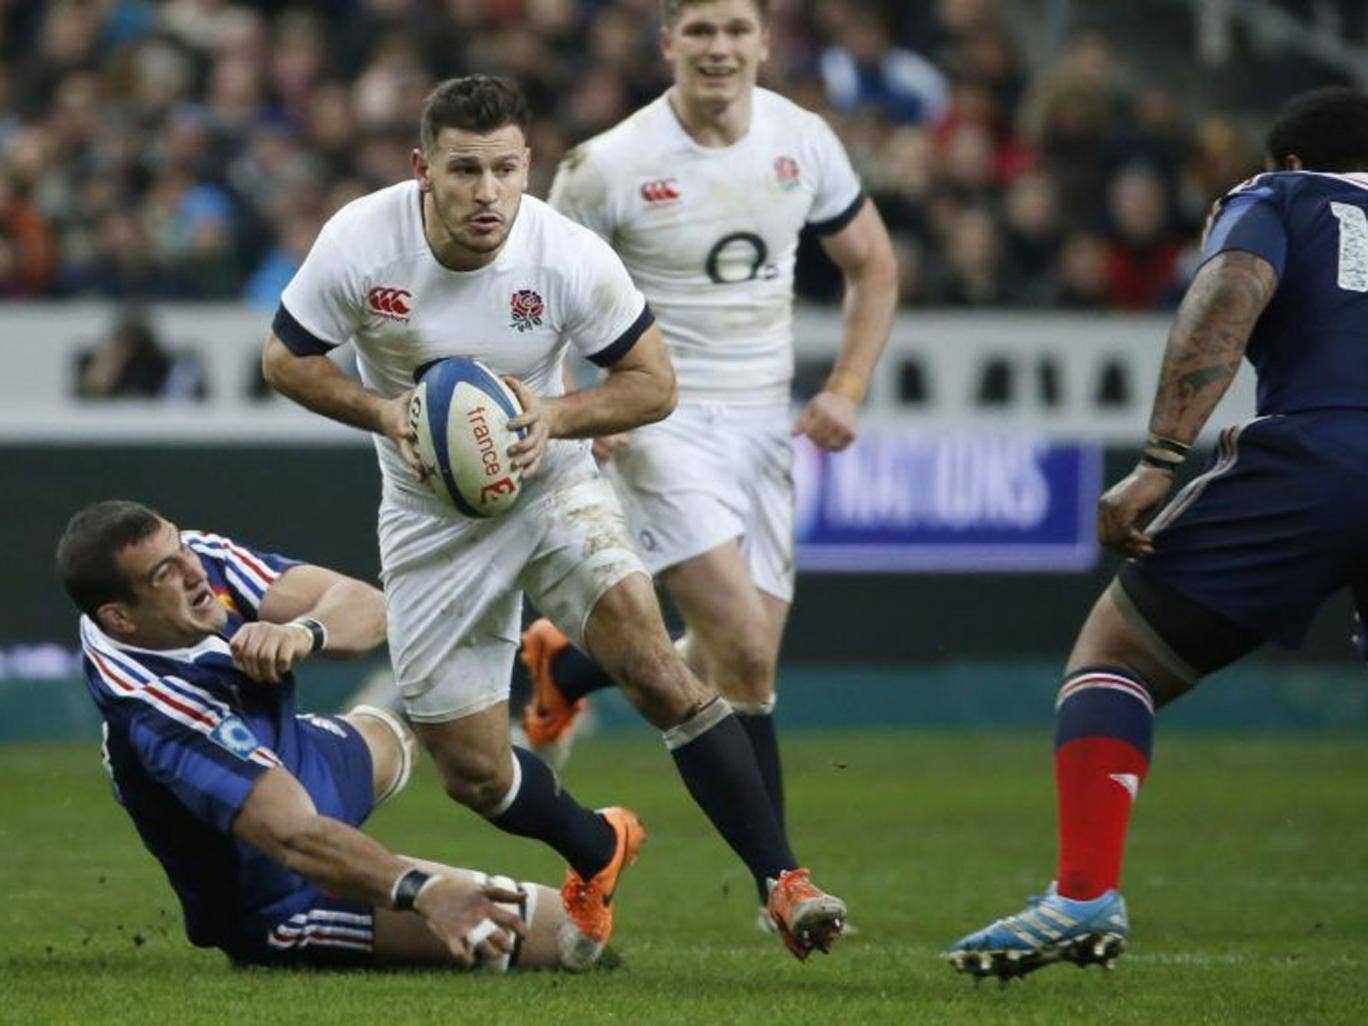 Replacing Danny Care (above) with Lee Dickson against France was criticised in some quarters